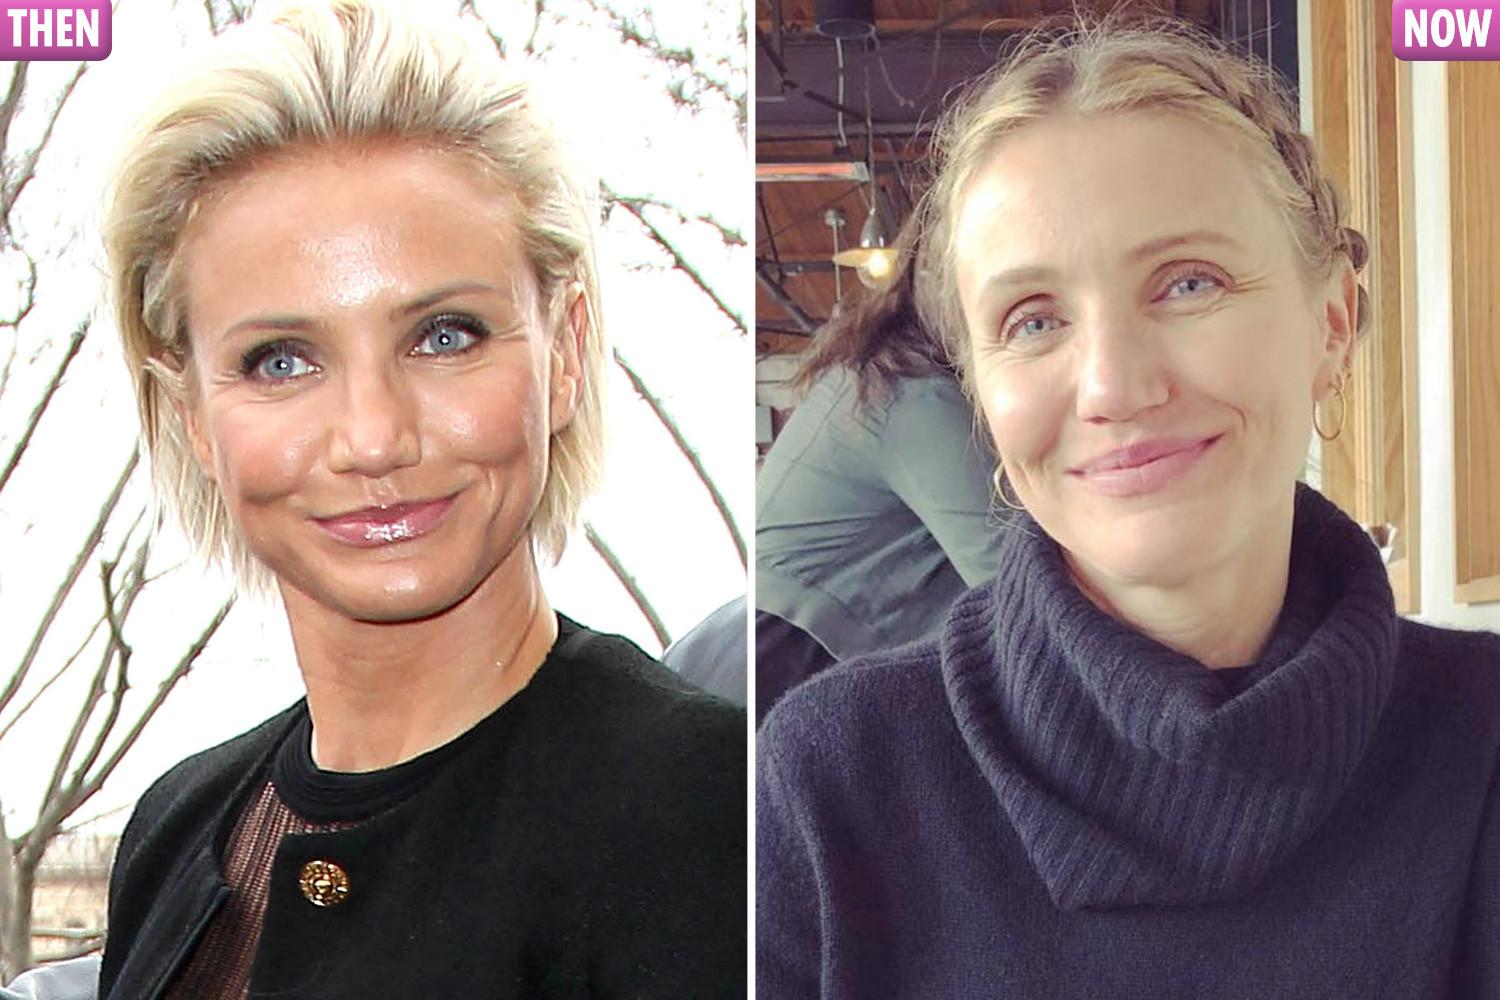 Cameron Diaz has banished her Botox look on the left admitted she's happy with her laughter lines